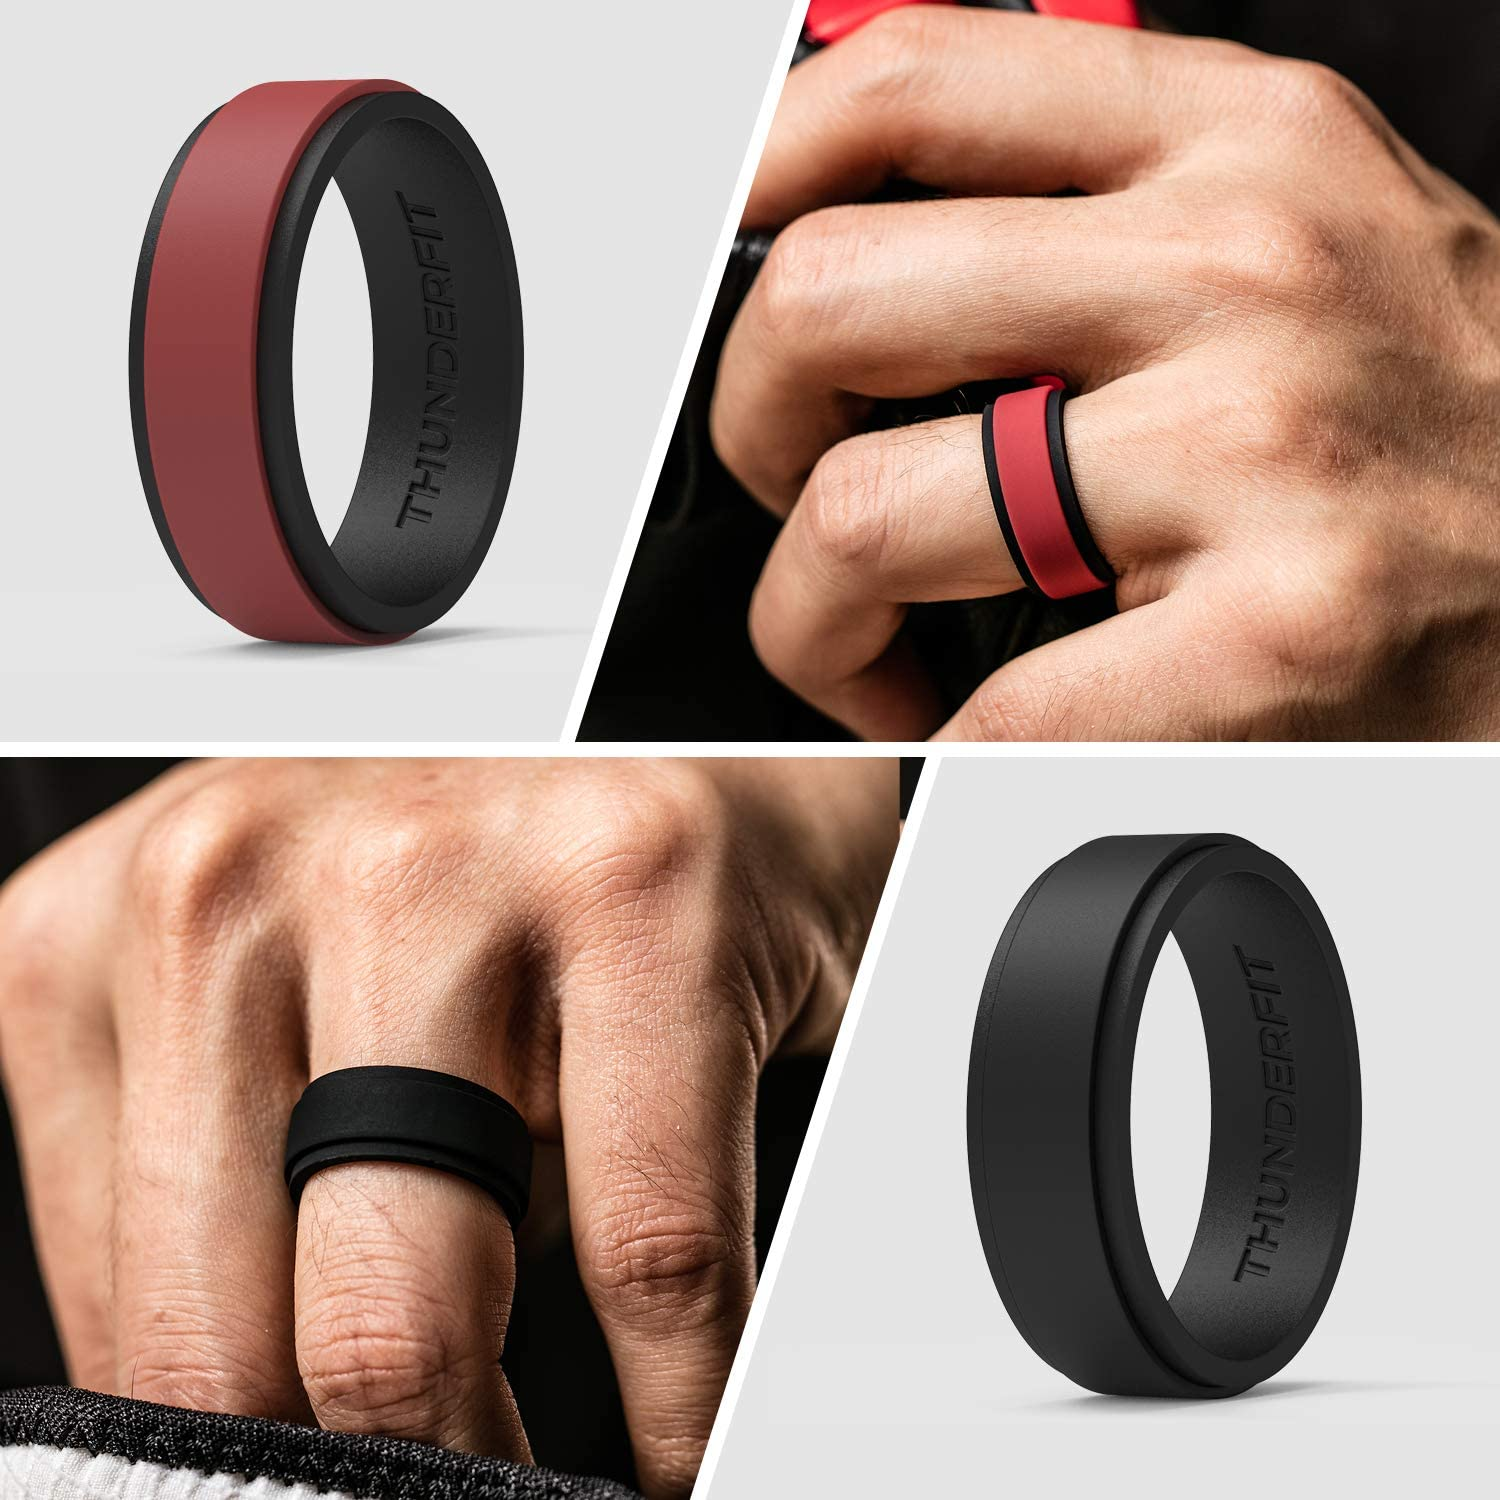 2 Layers Step Edge 10mm Width 2.3mm Thick ThunderFit Silicone Wedding Rings for Men